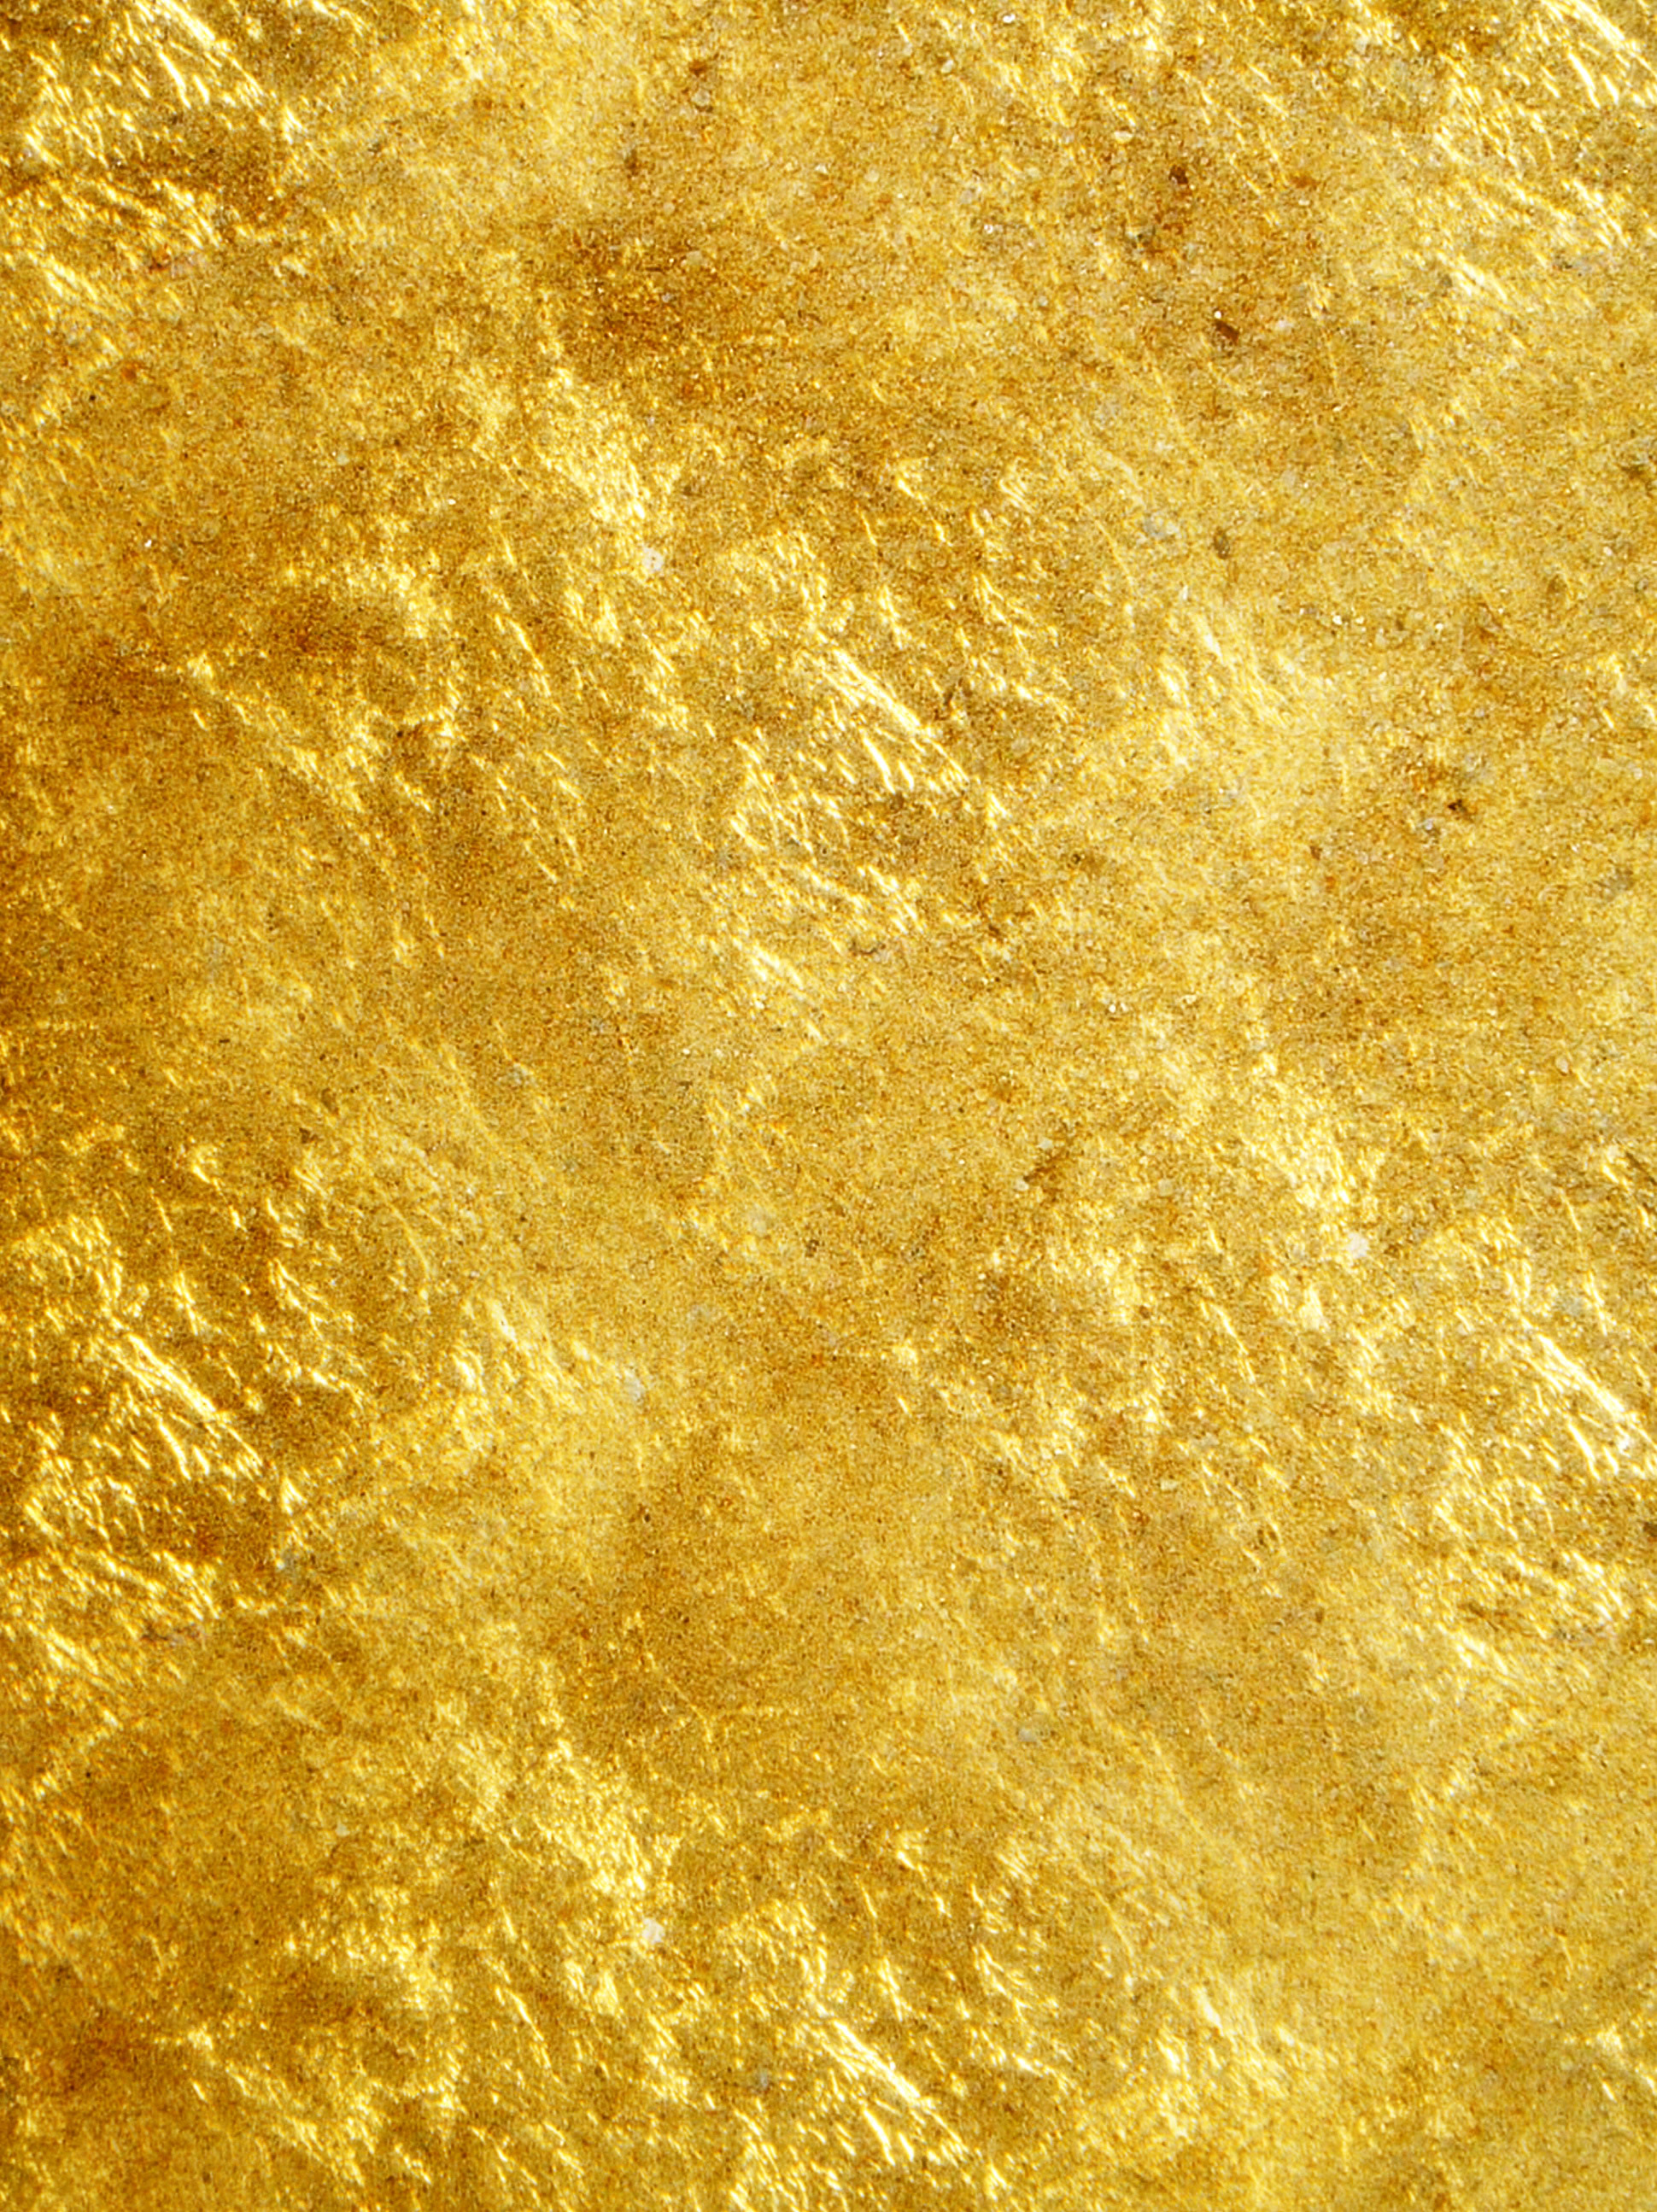 Gold Background Images 4 1940x2590